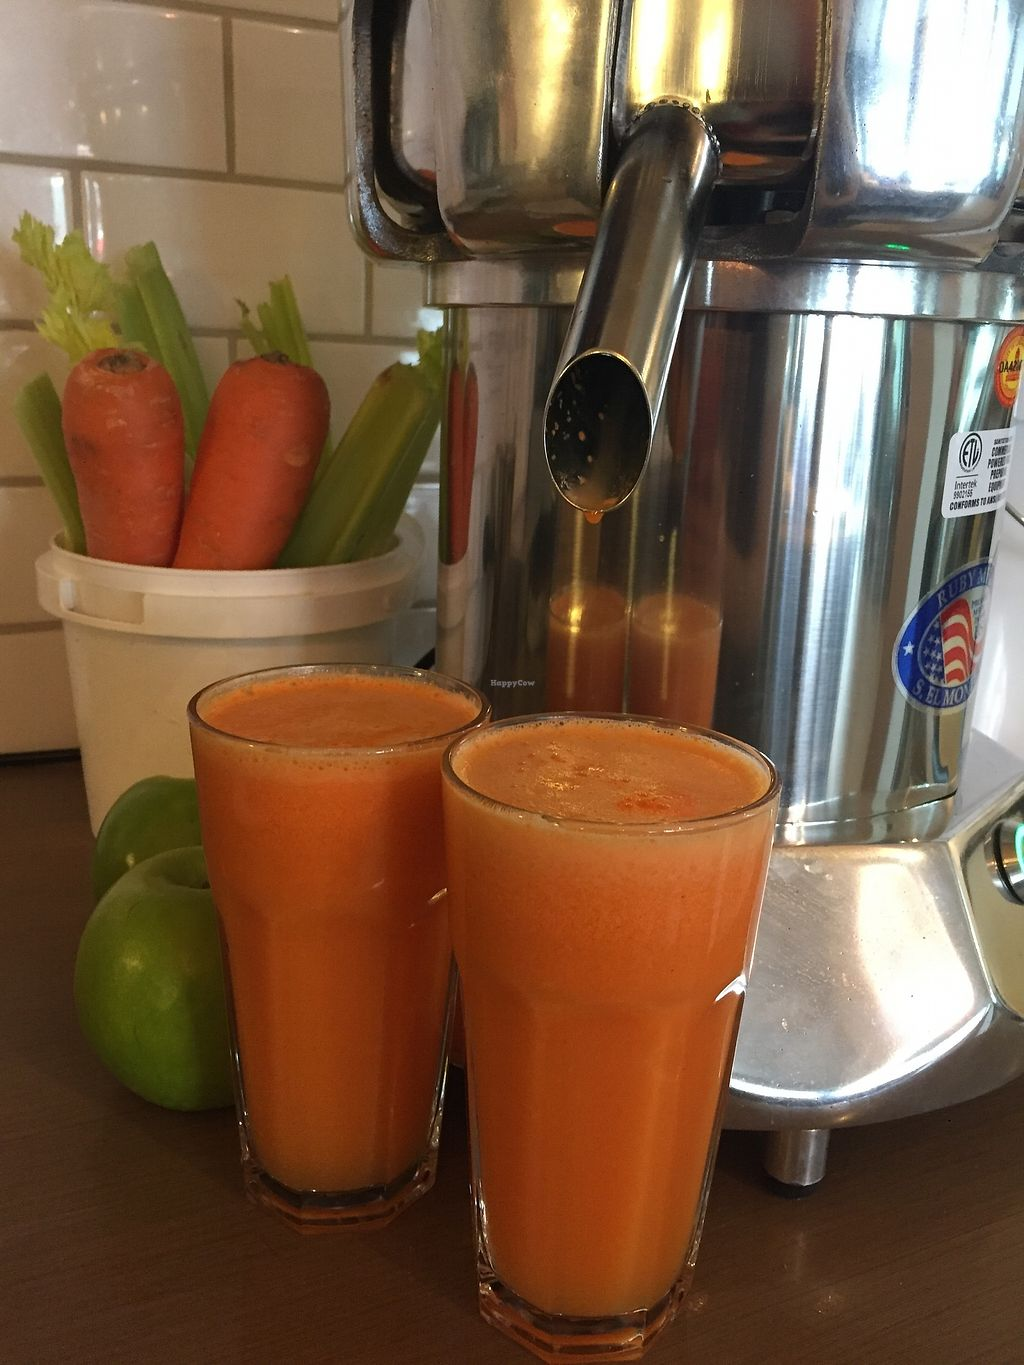 """Photo of The Cozy Corner  by <a href=""""/members/profile/CamillaBaker"""">CamillaBaker</a> <br/>Fresh juice & smoothies made from scratch <br/> January 23, 2018  - <a href='/contact/abuse/image/110086/350067'>Report</a>"""